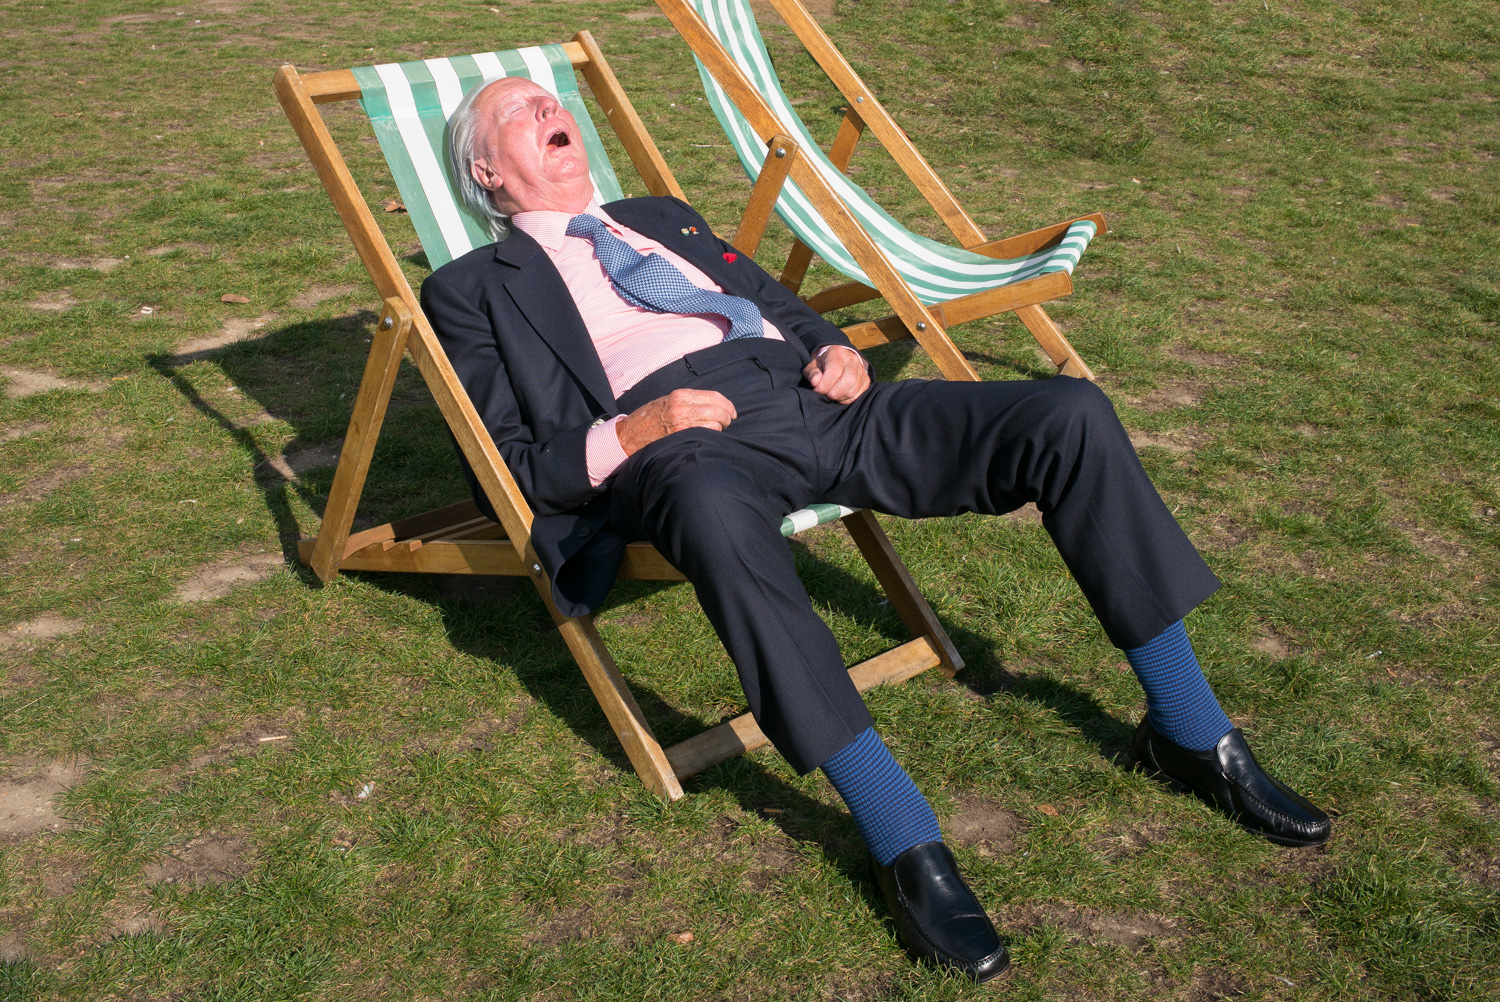 Elderly man sleeping in deckchair in the sunshine